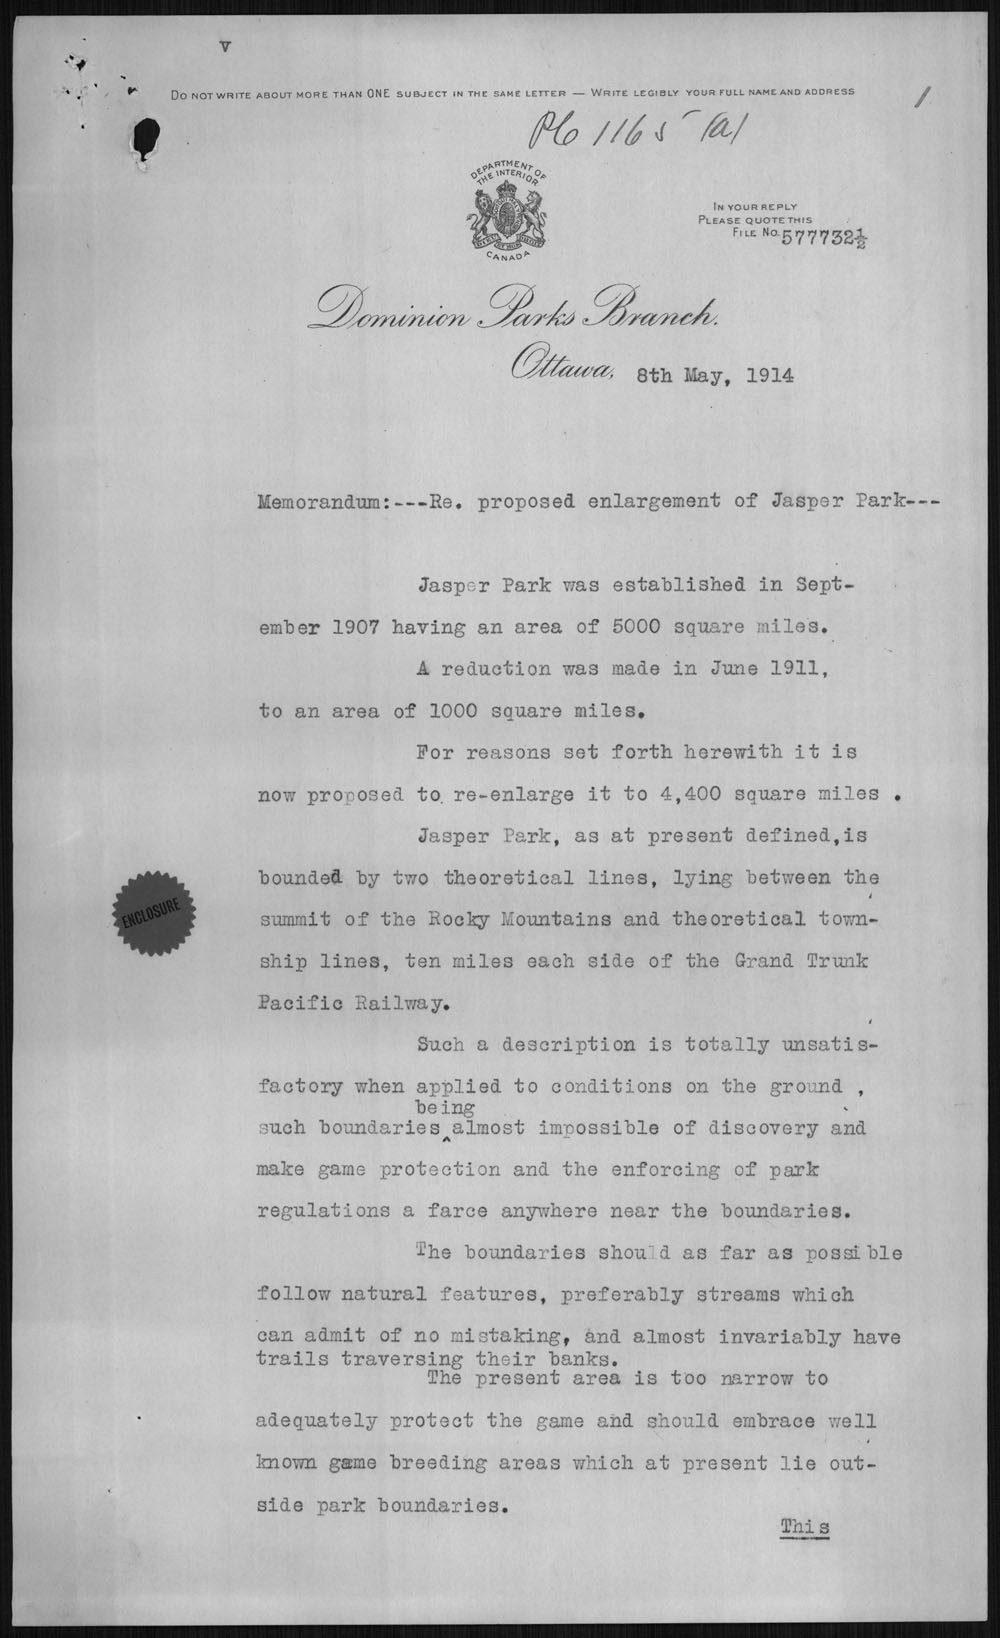 Digitized page of Orders in Council for Image No.: e010877242-v8